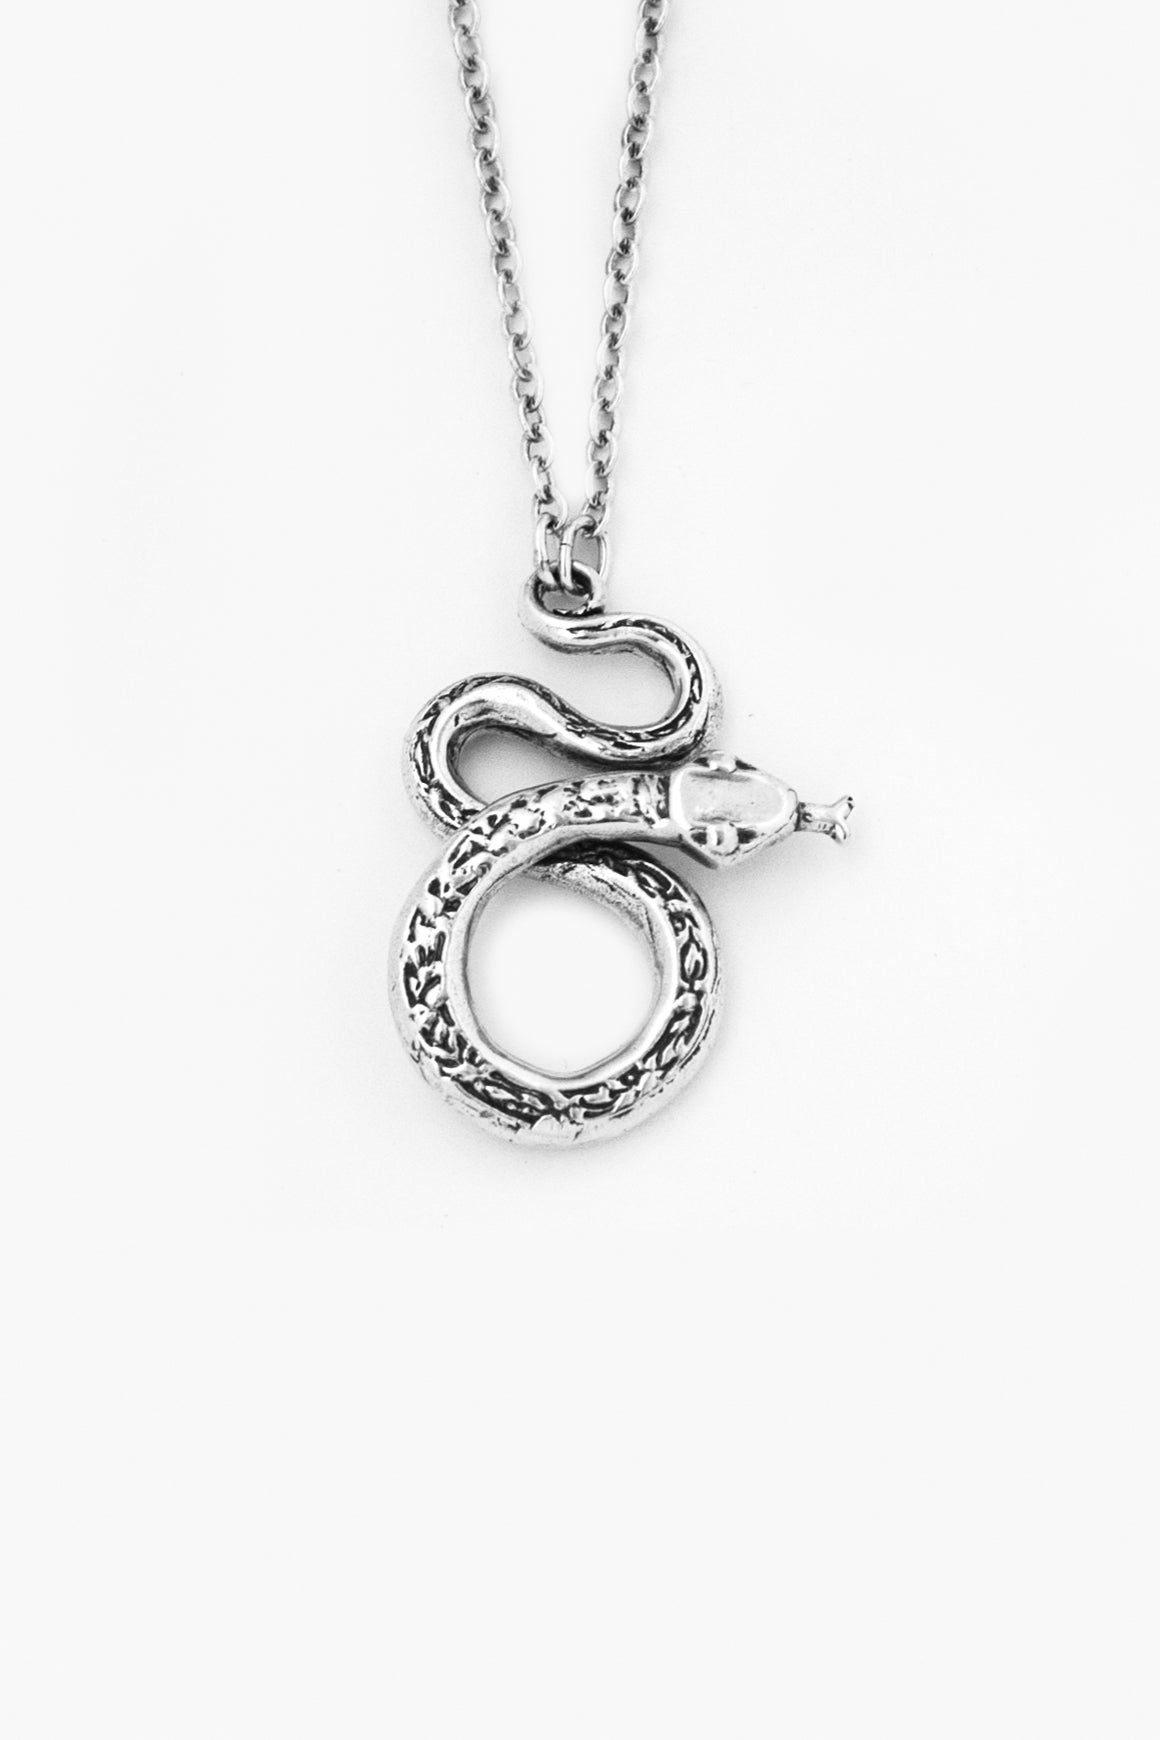 Snake Sterling Silver Necklace - Silver Spoon Jewelry